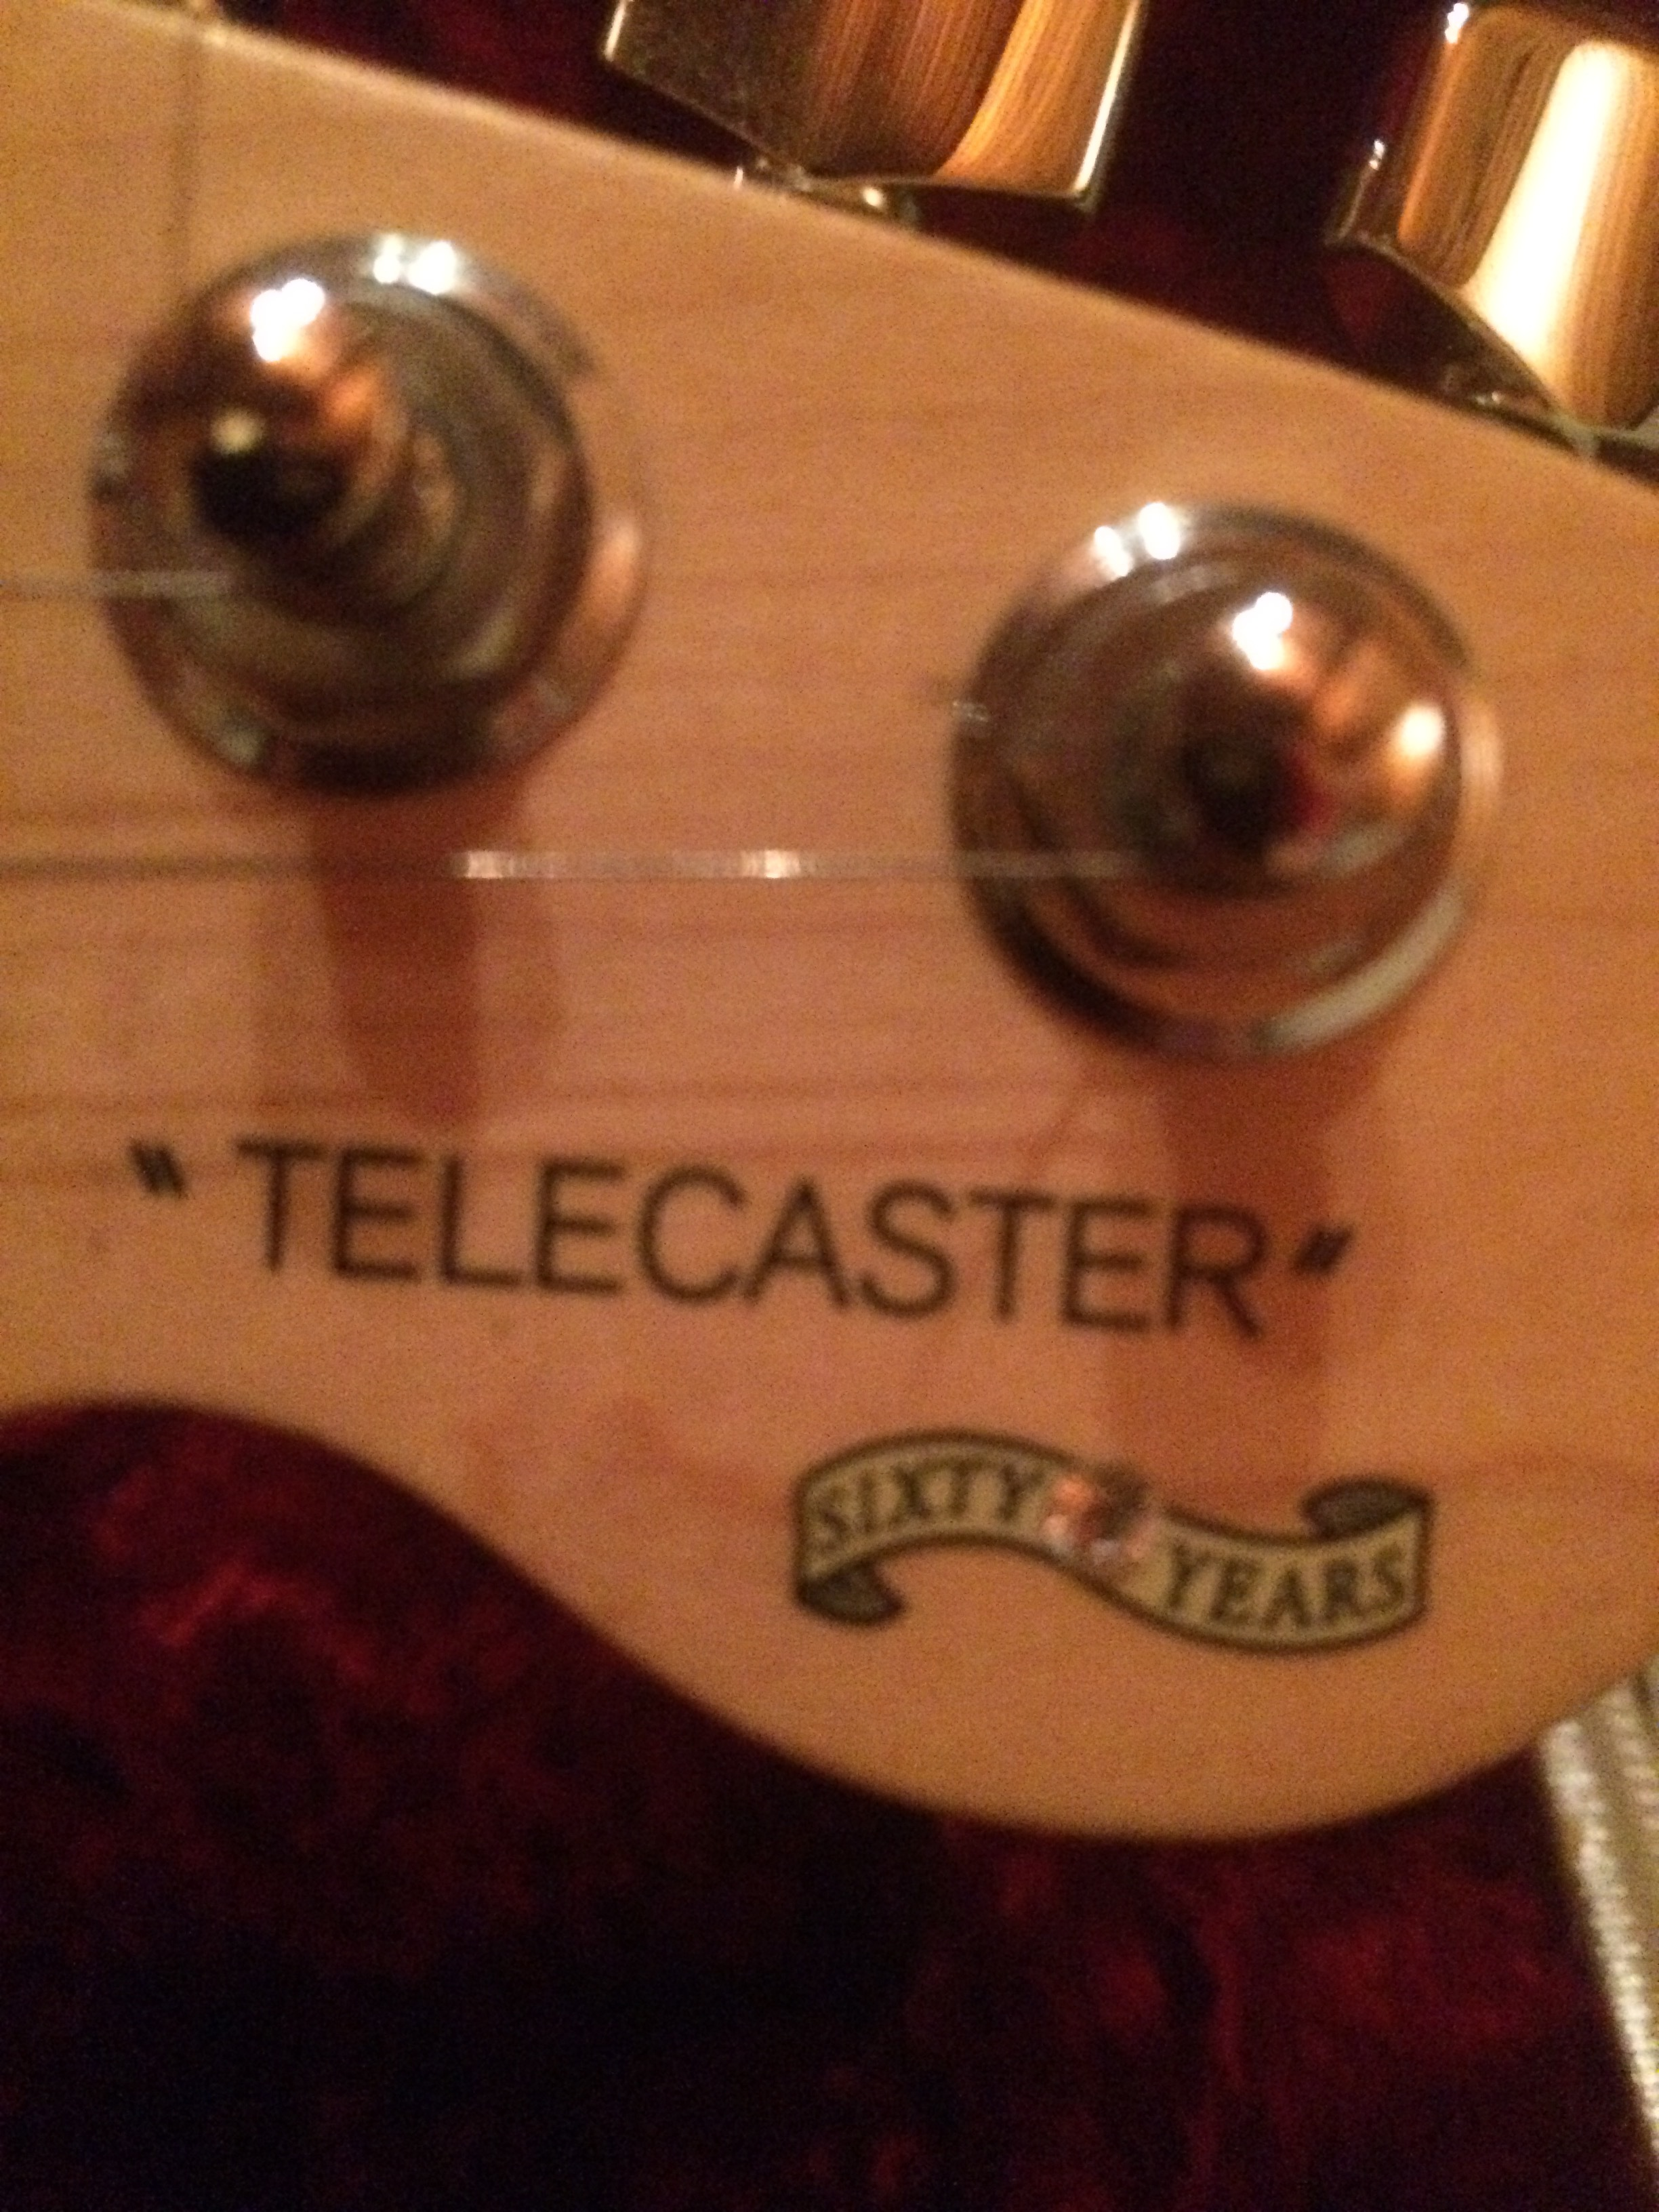 60th Anniversary Limited Edition Telecaster 2006 Fender  # But Magasin Le Pontet Television